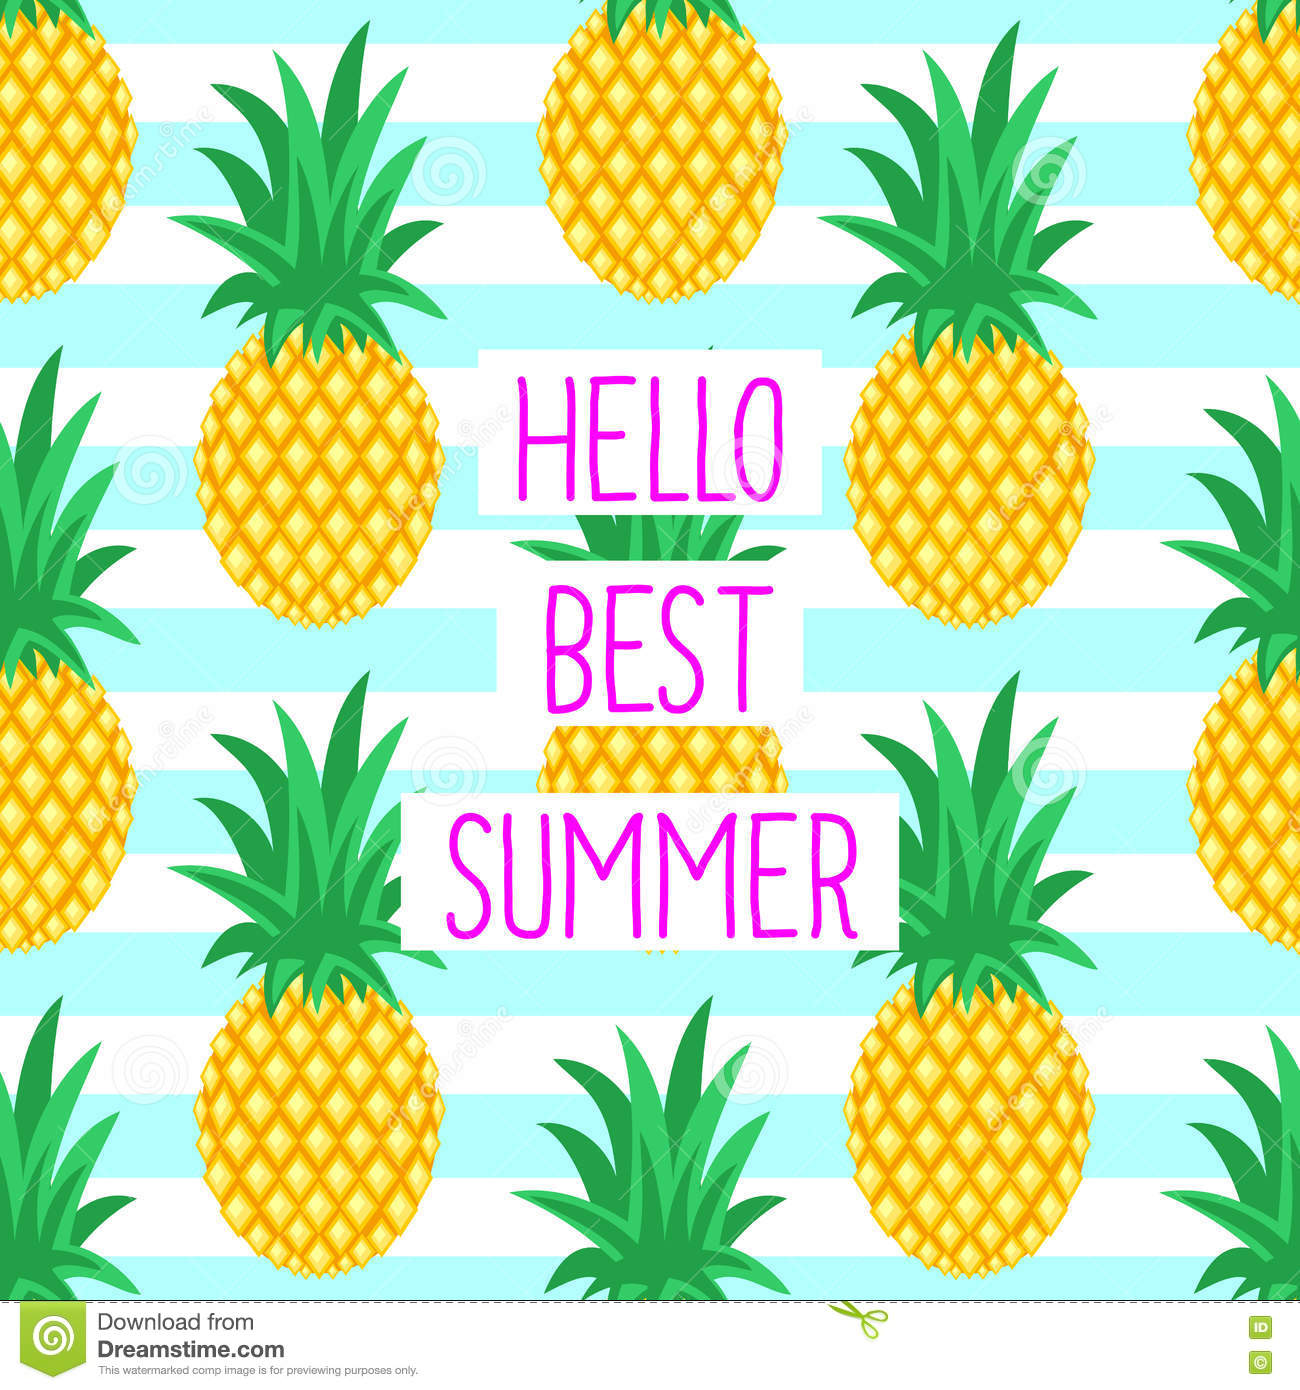 Really Cute Teal Teal Wallpaper Hello Best Summer Card With Cute Pineapples Stock Vector